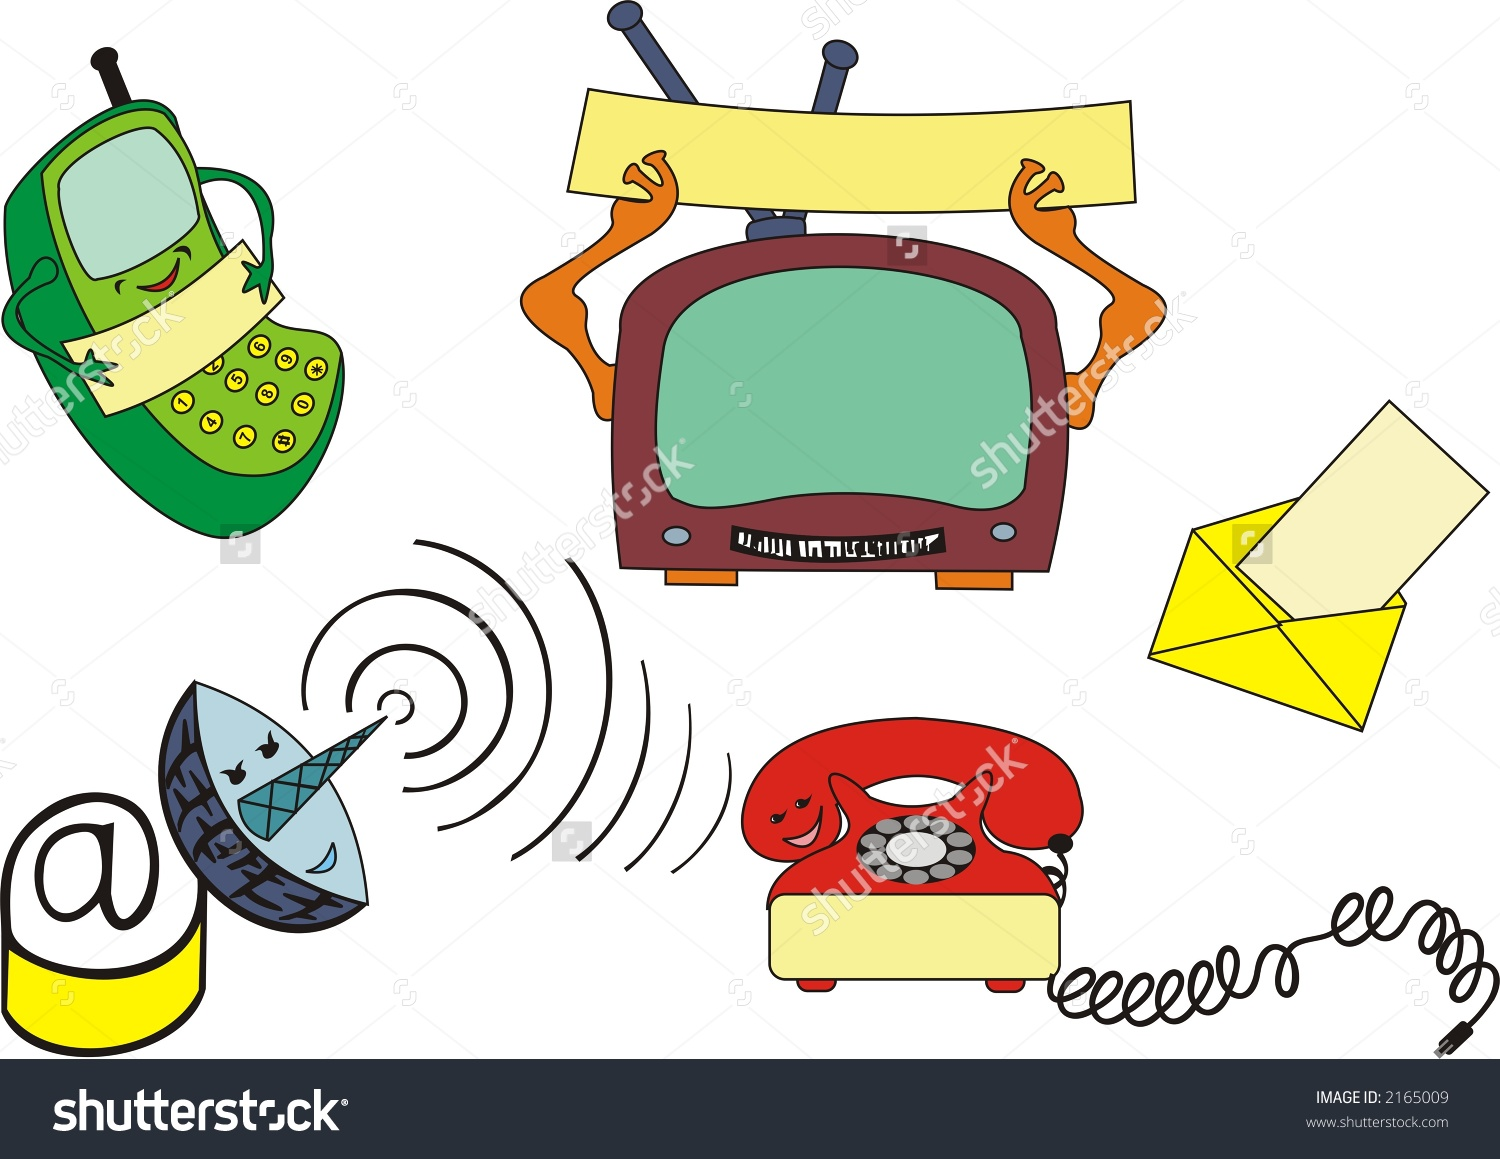 Several Modern Communication Devices On A3 Stock Illustration.